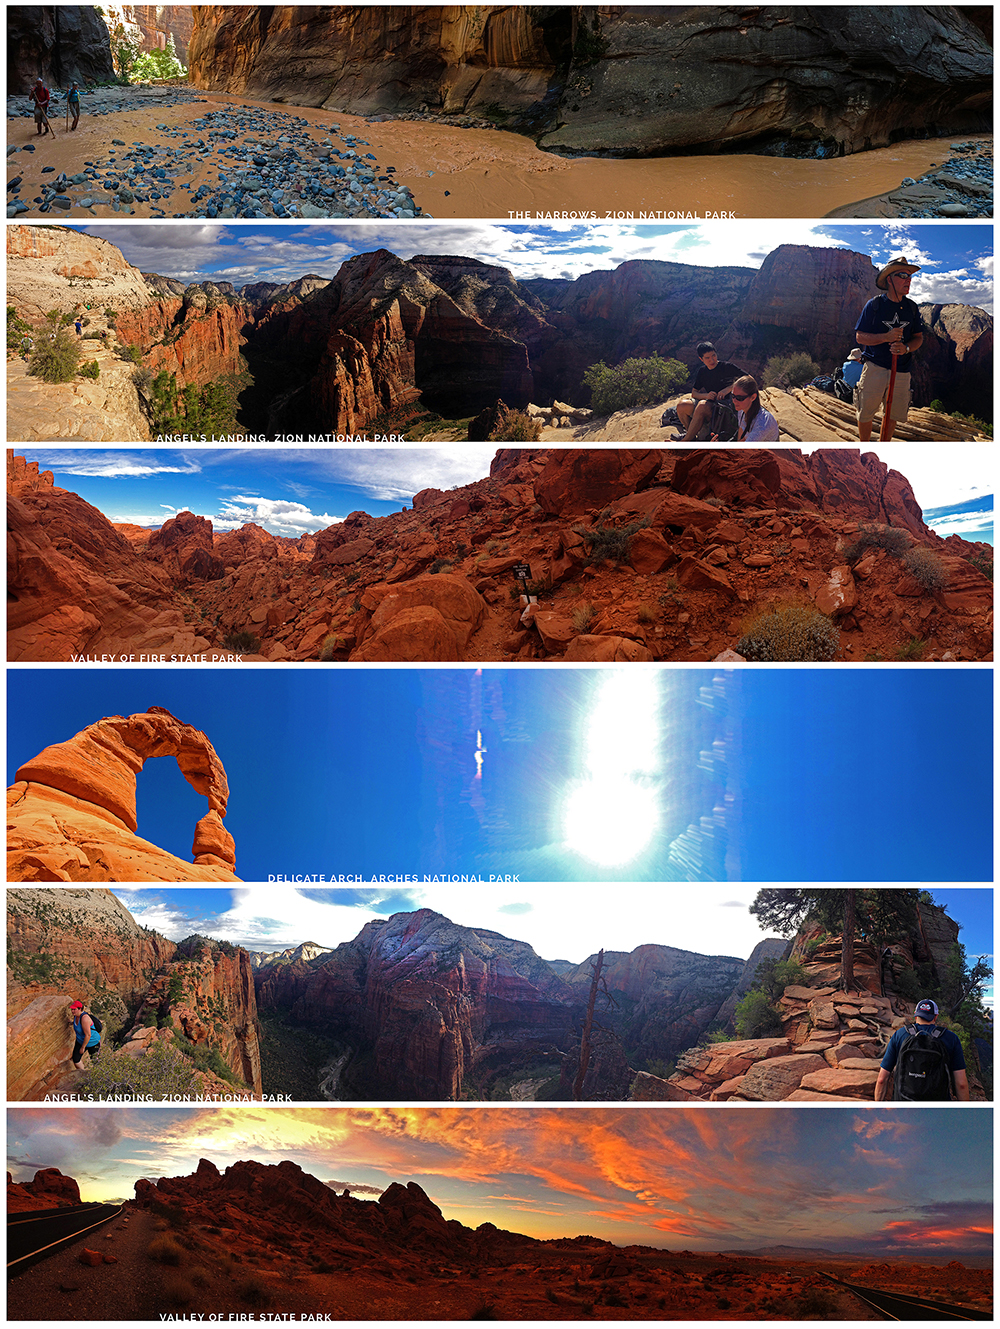 American Southwest 2014 Panorama Poster_09_2